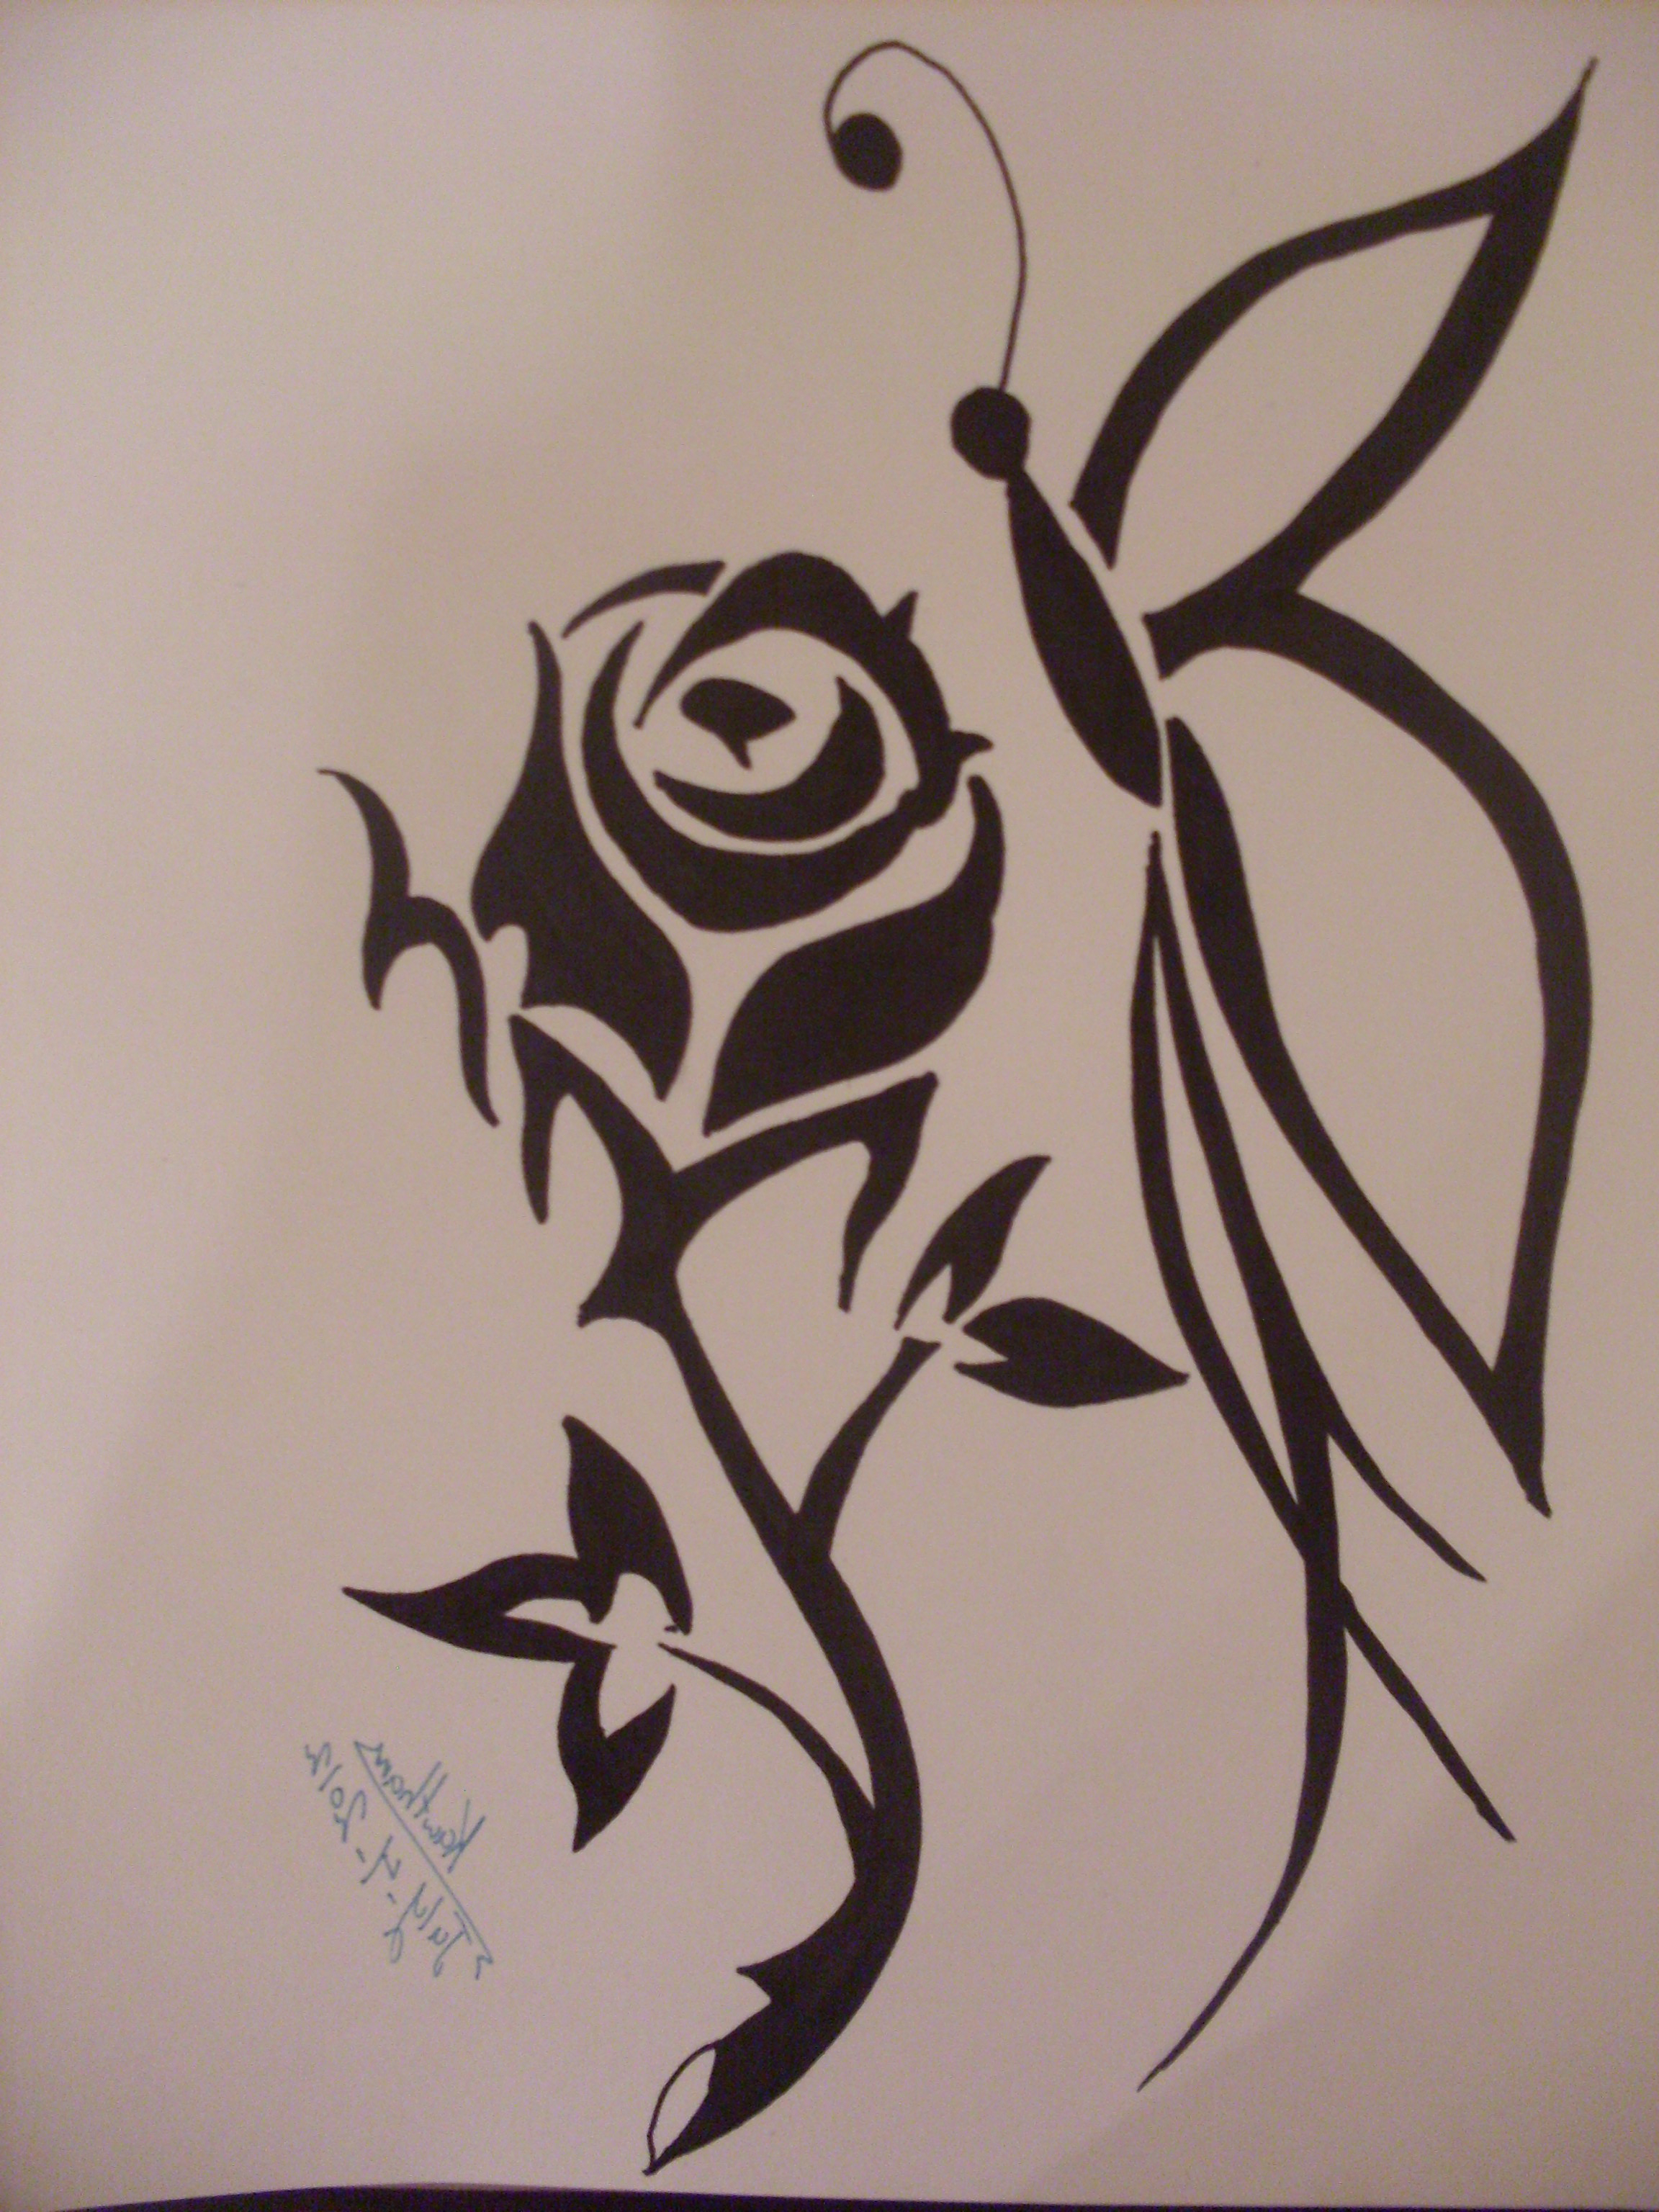 2304x3072 Simple Butterfly Rose Flower Sketch Image Rose Flowers Drawing